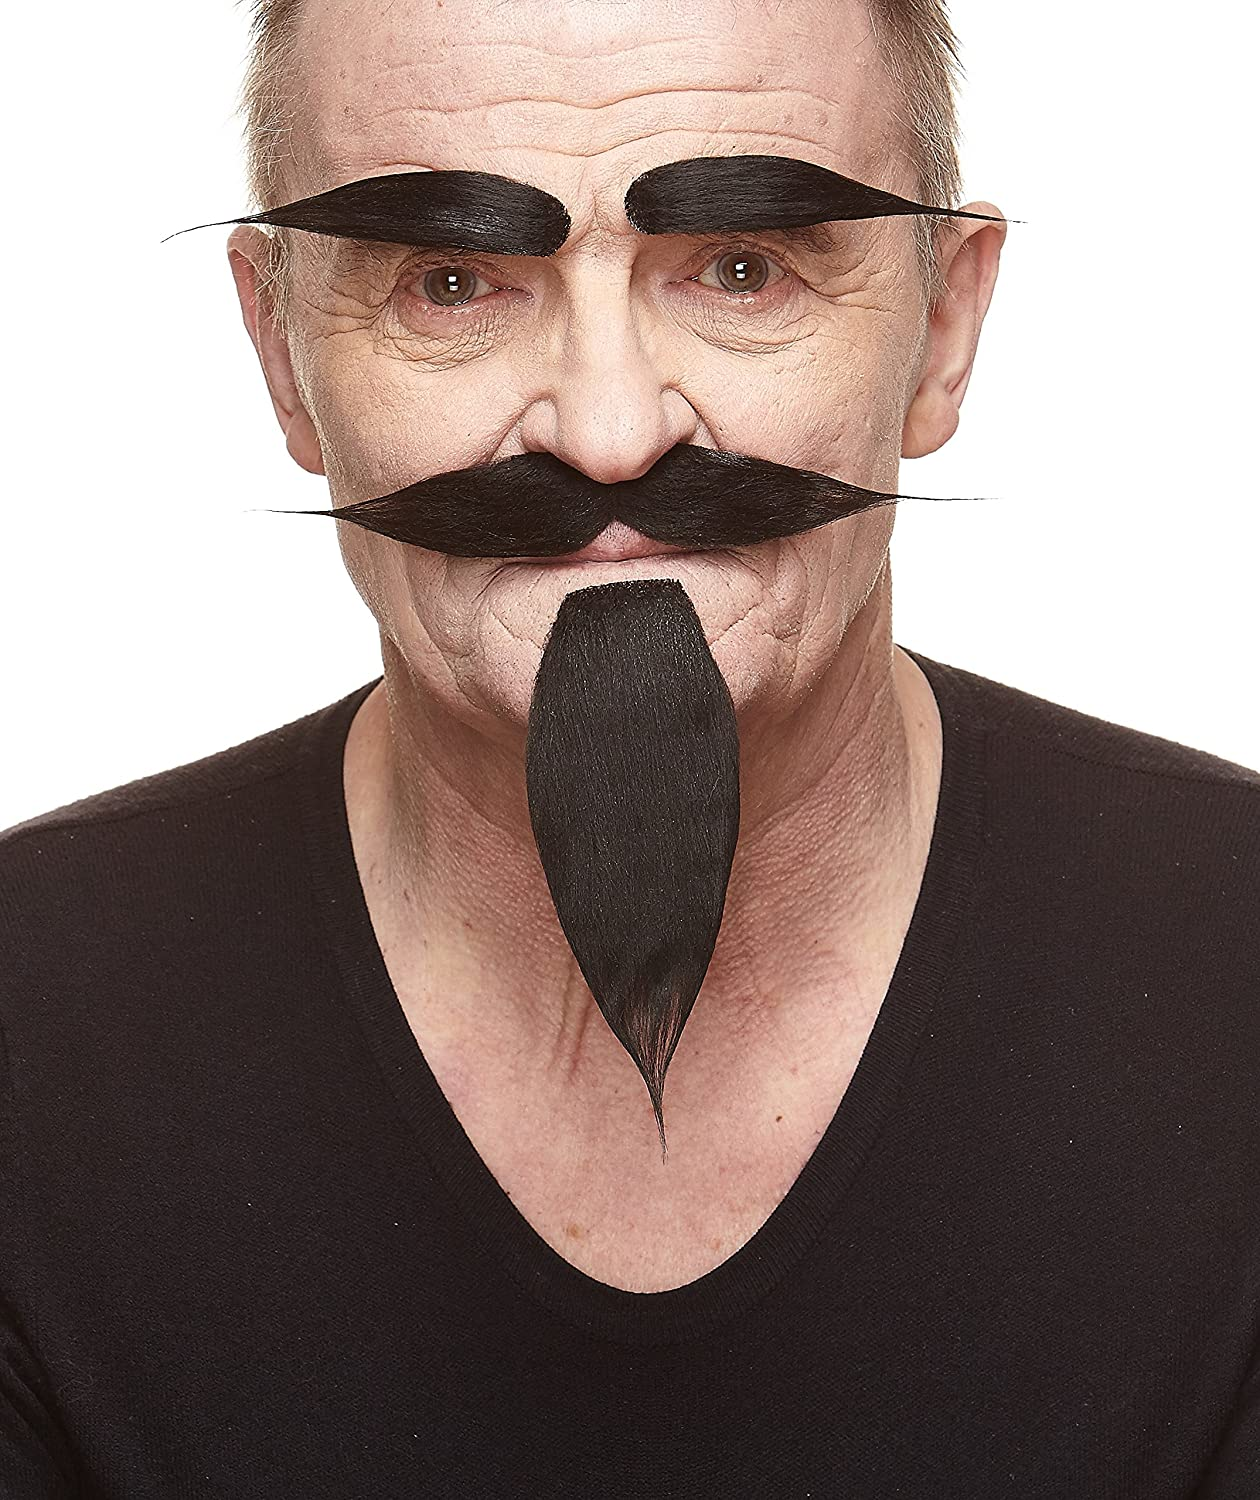 Mustaches Self Adhesive, Novelty, Fake Hairy Russian Beard, and Eyebrows Black Color